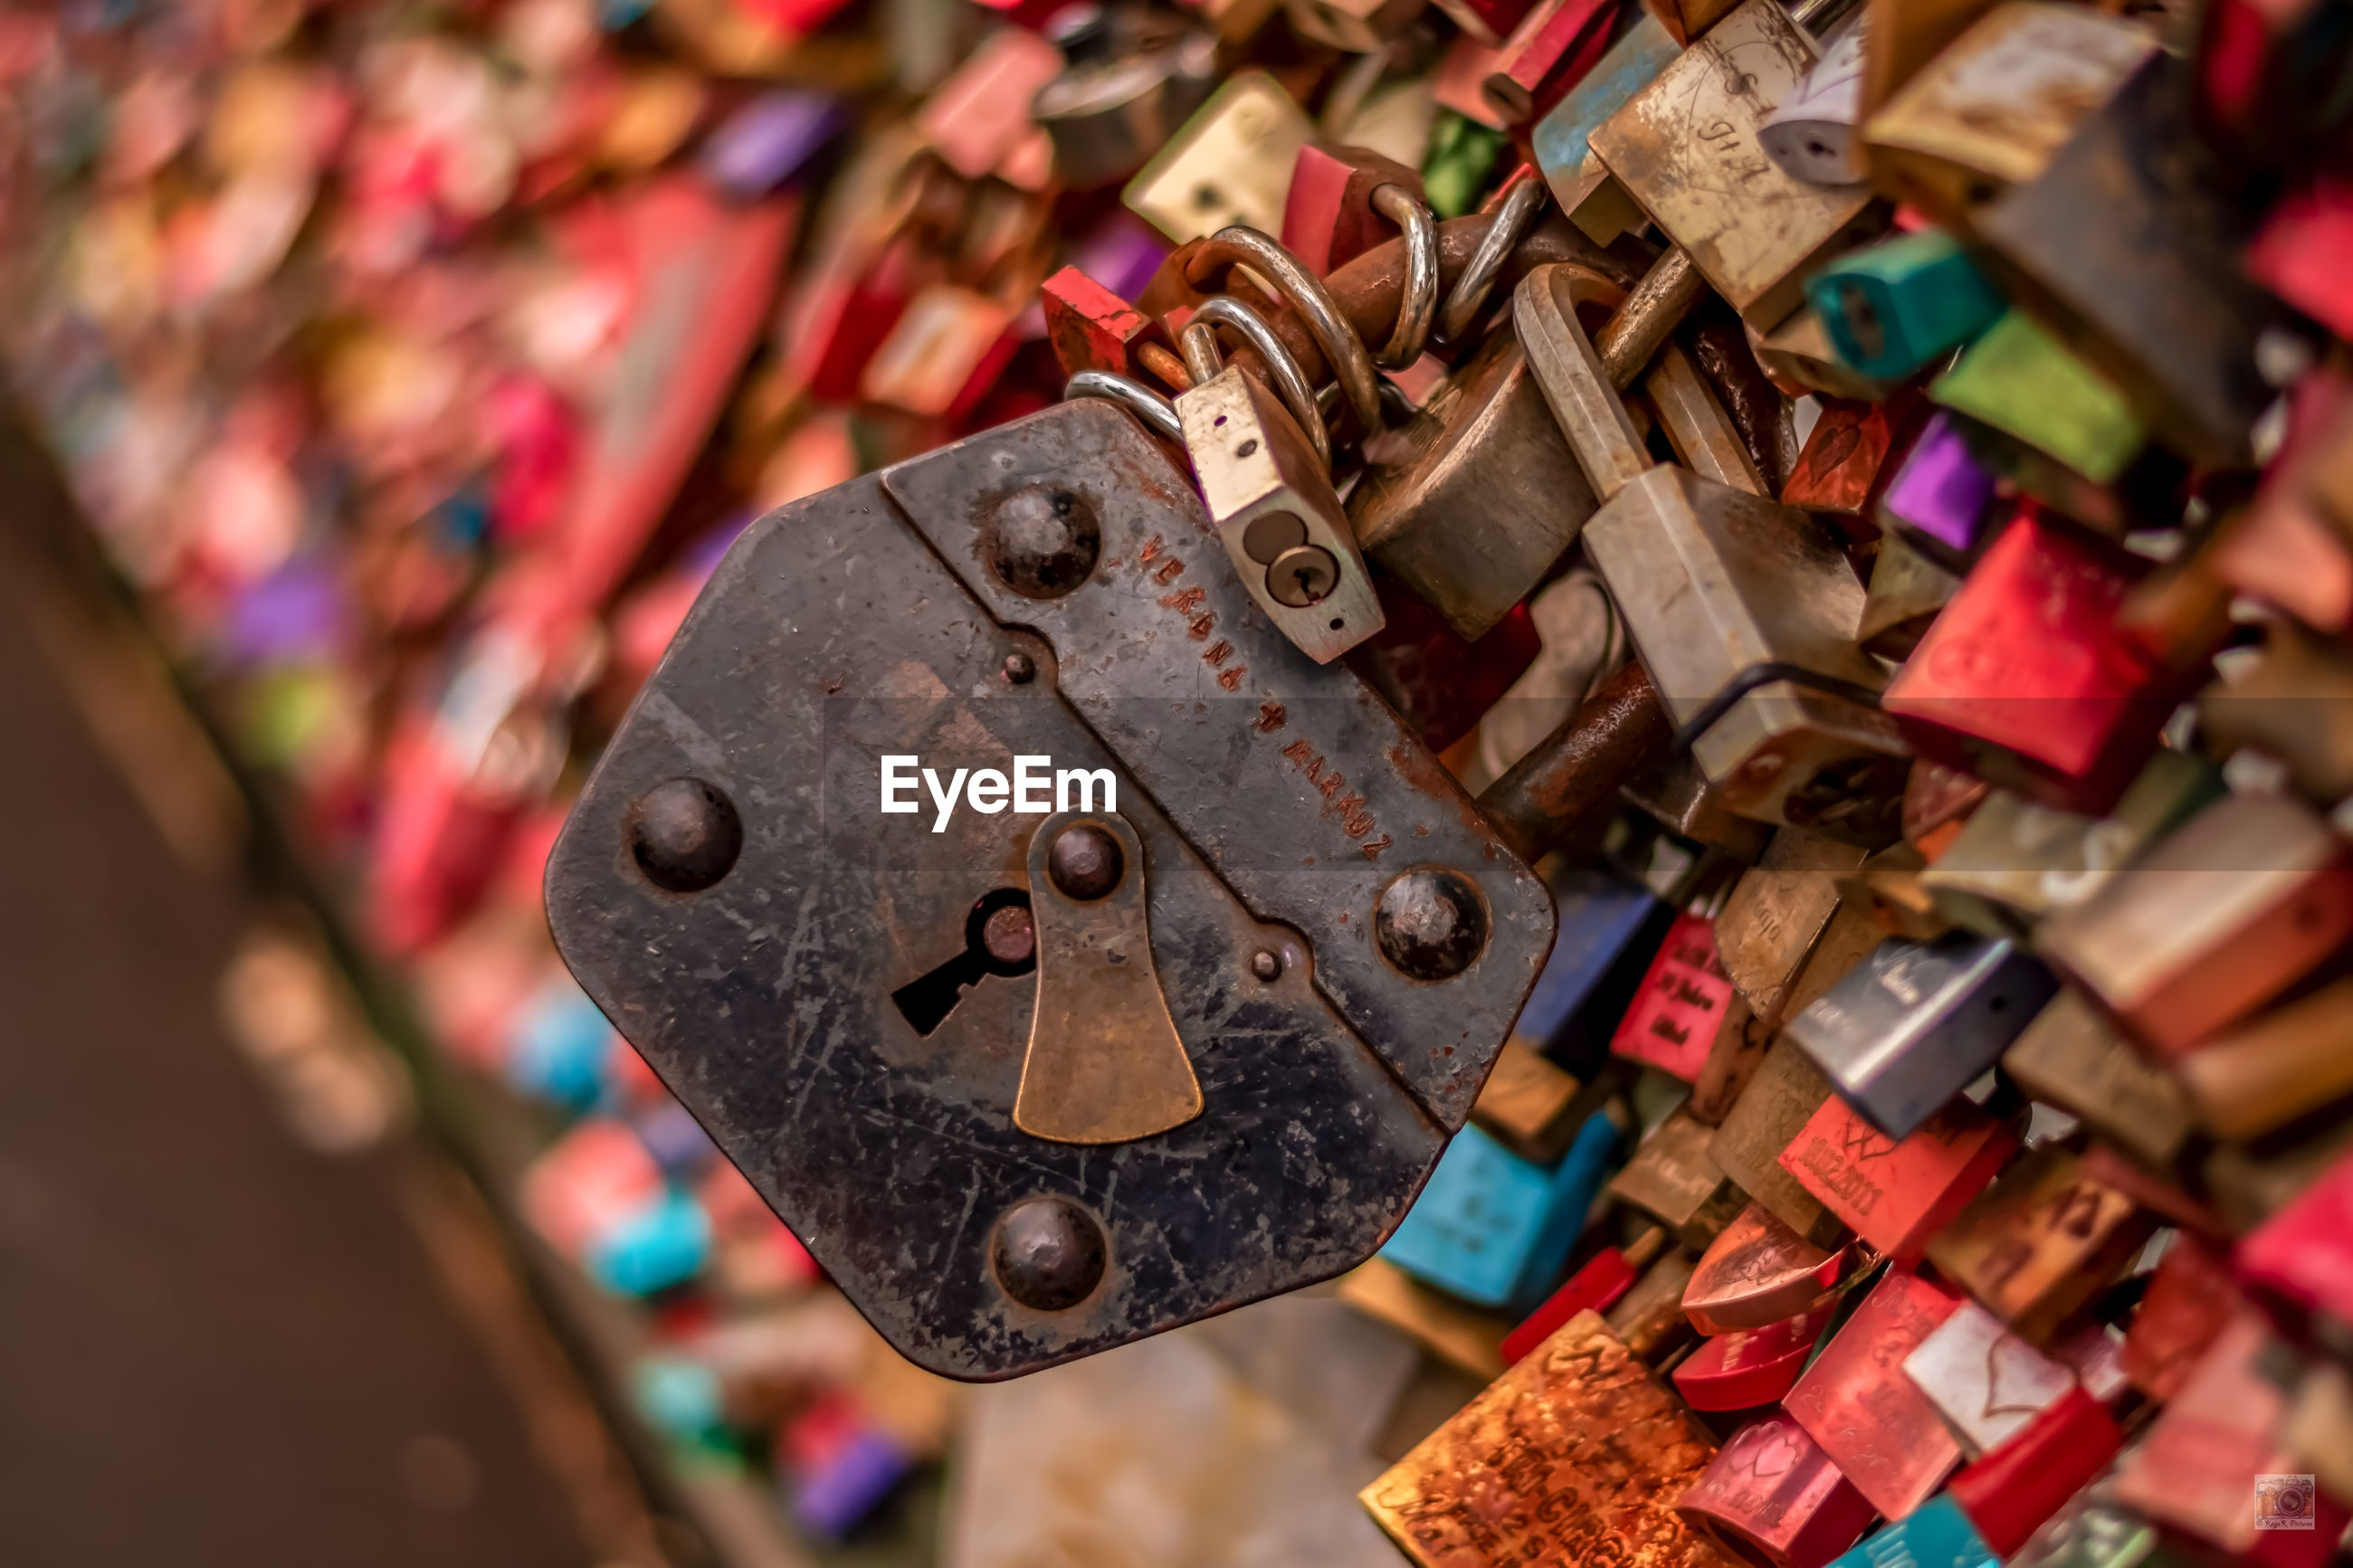 A special padlock on the railway bridge of the love locks